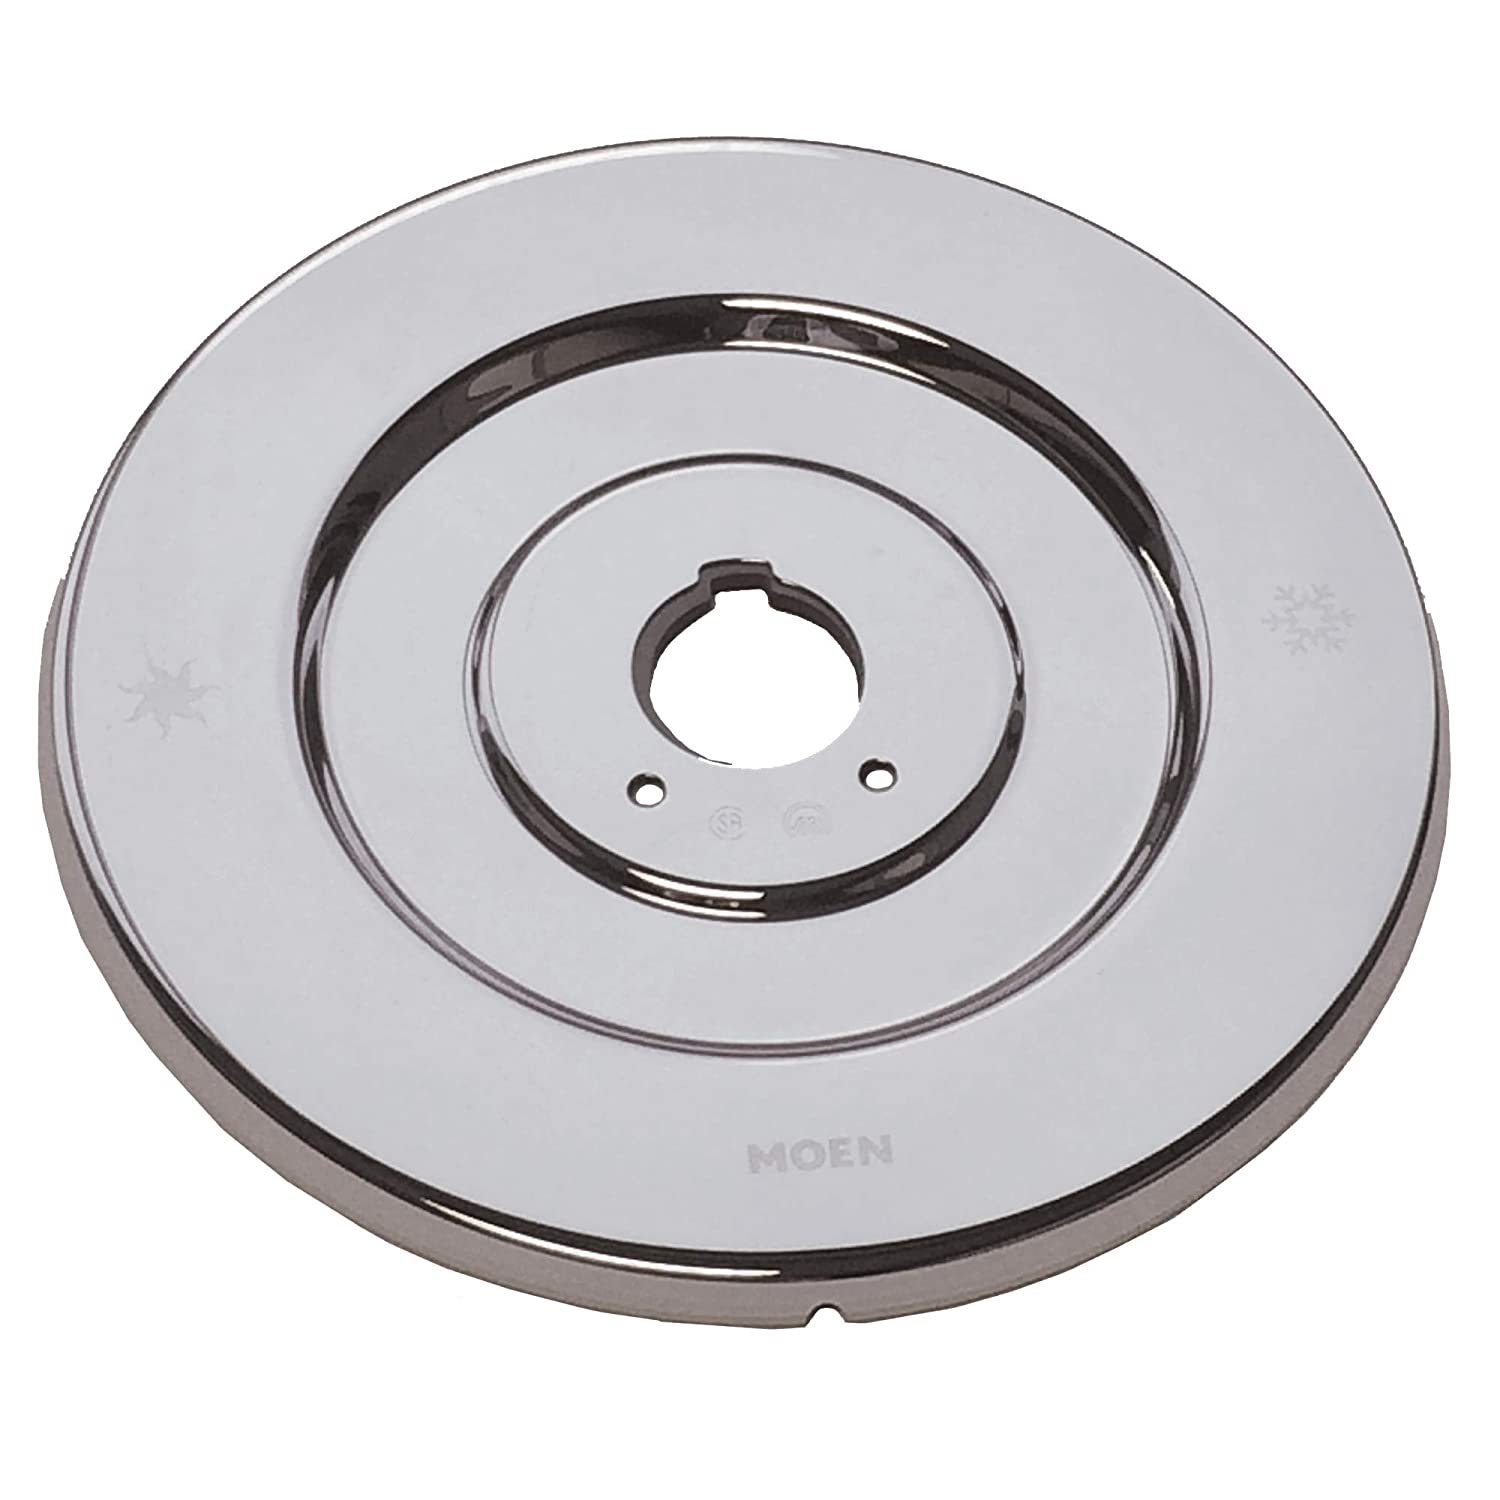 Moen 16090 Chateau Collection Replacement Escutcheon for One-Handle Tub and Shower Faucets, Chrome